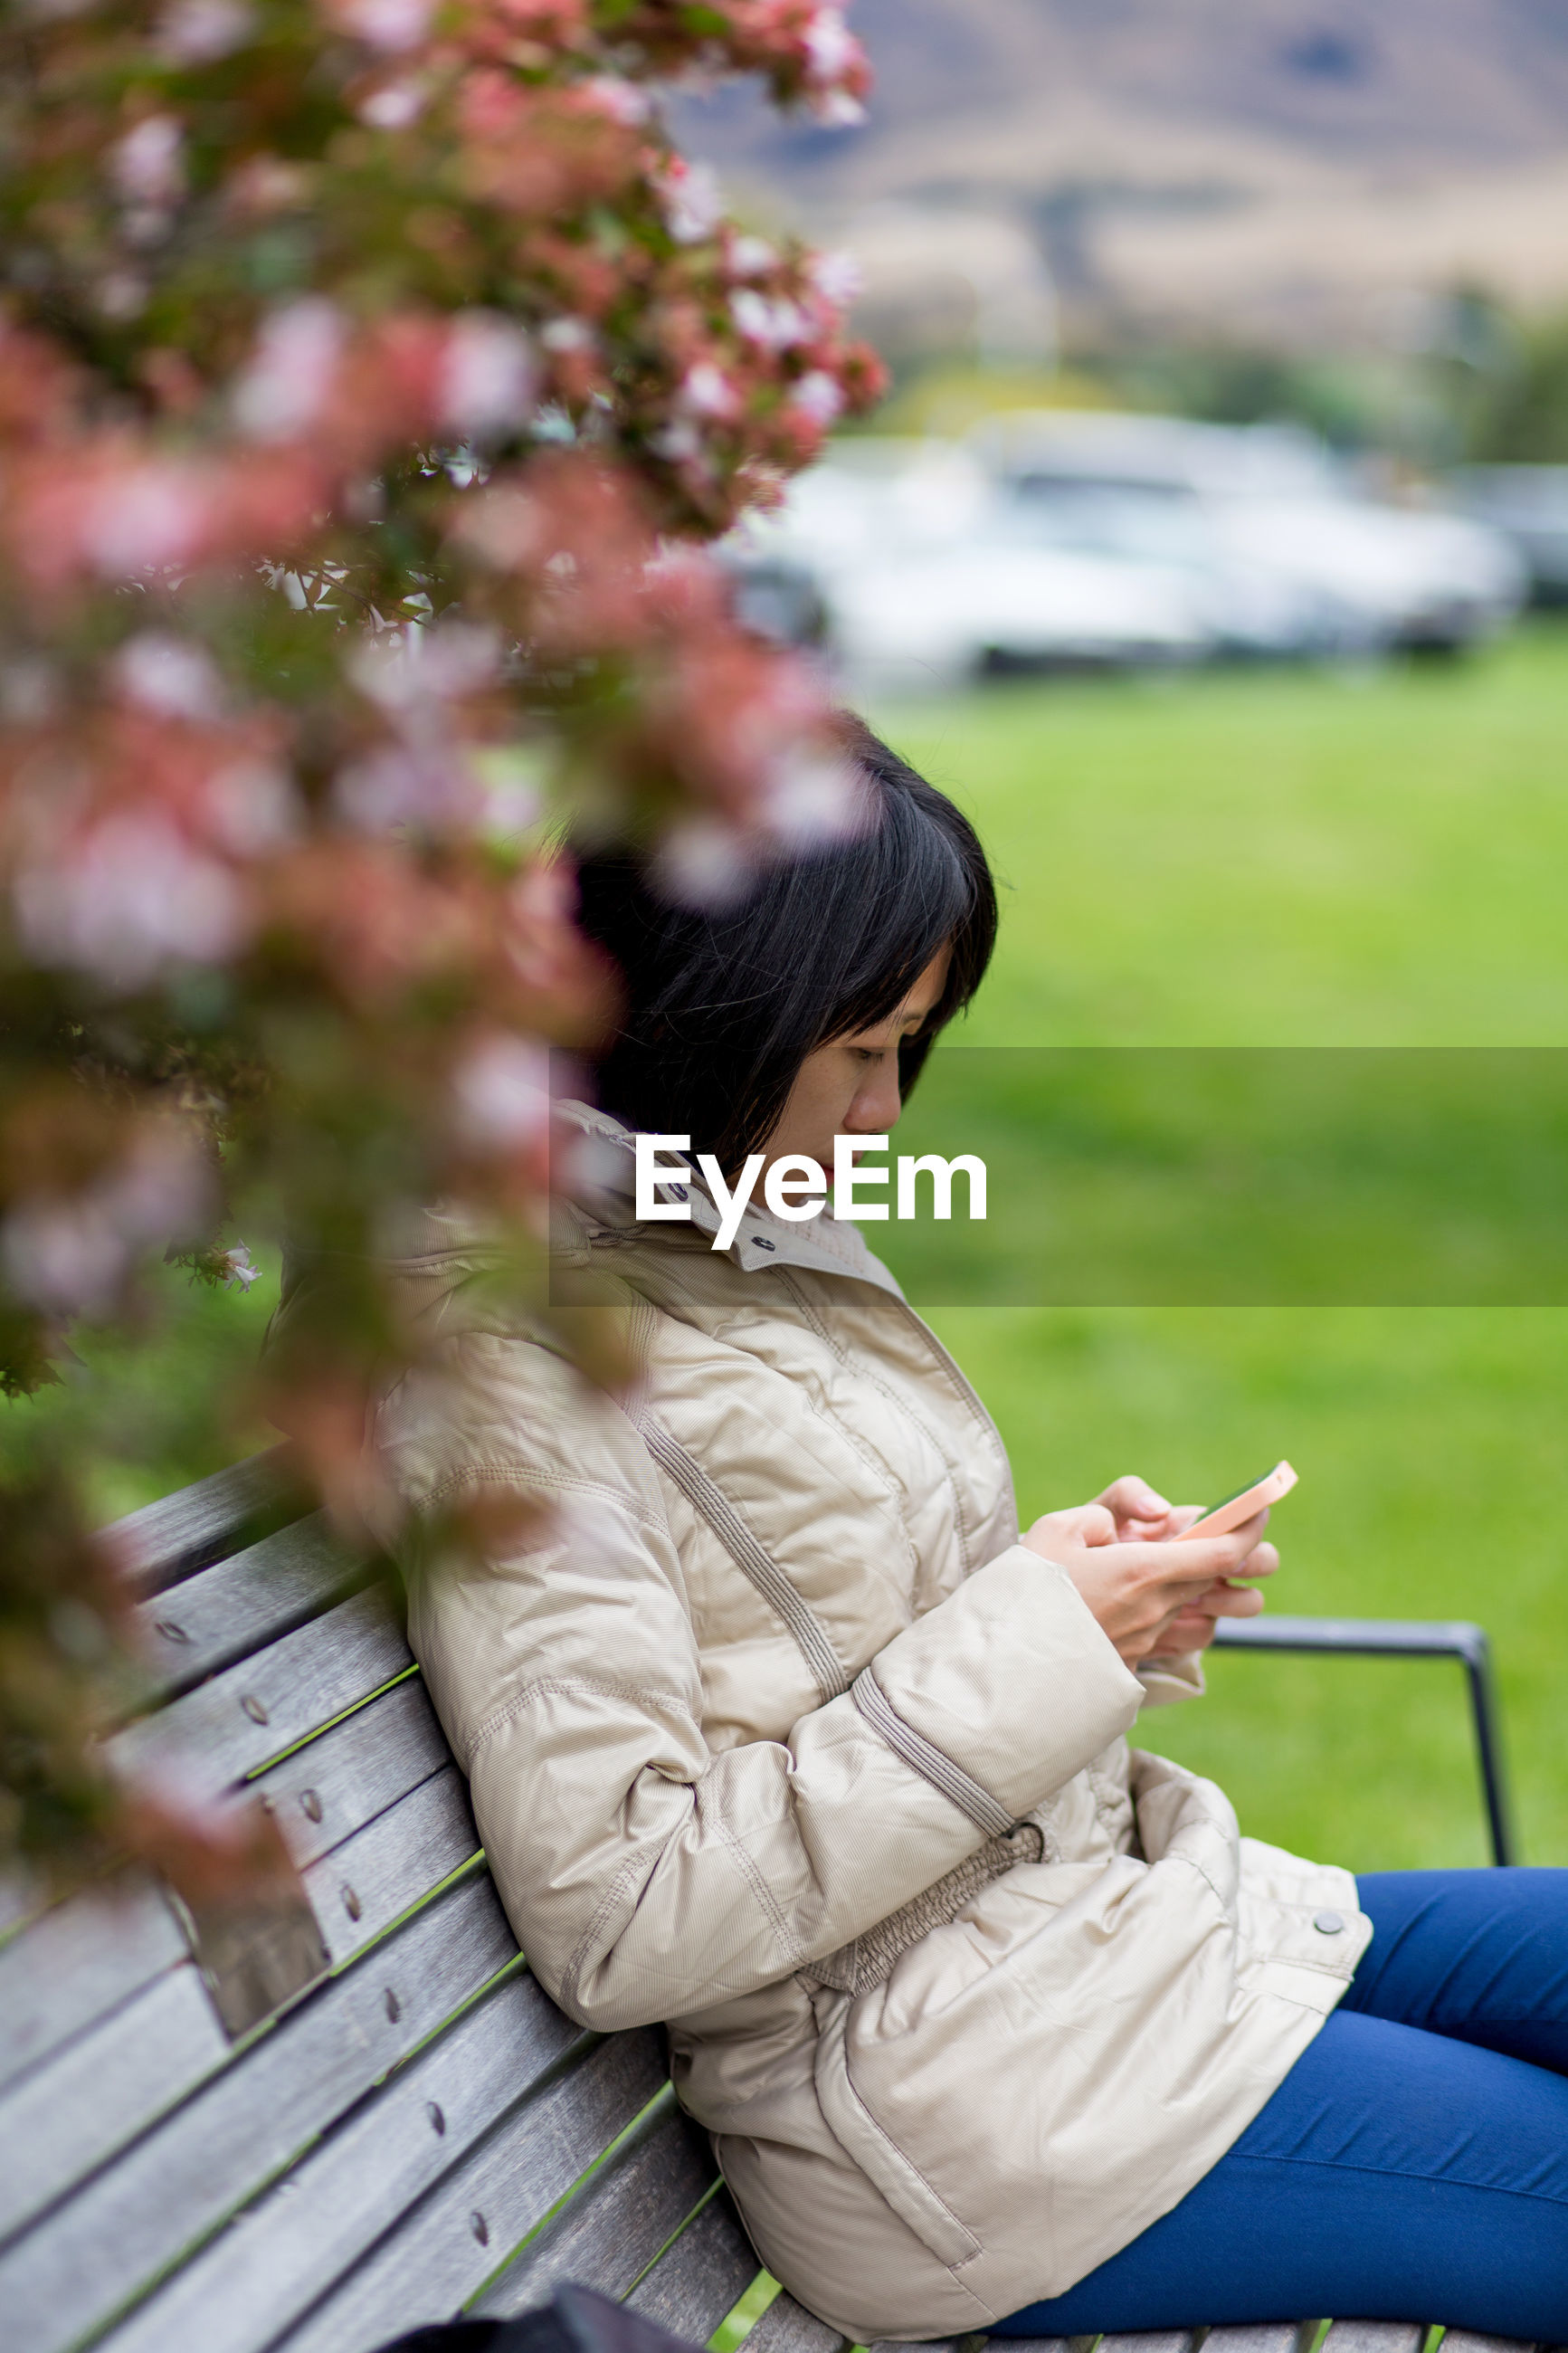 Woman using mobile phone while sitting on bench in park